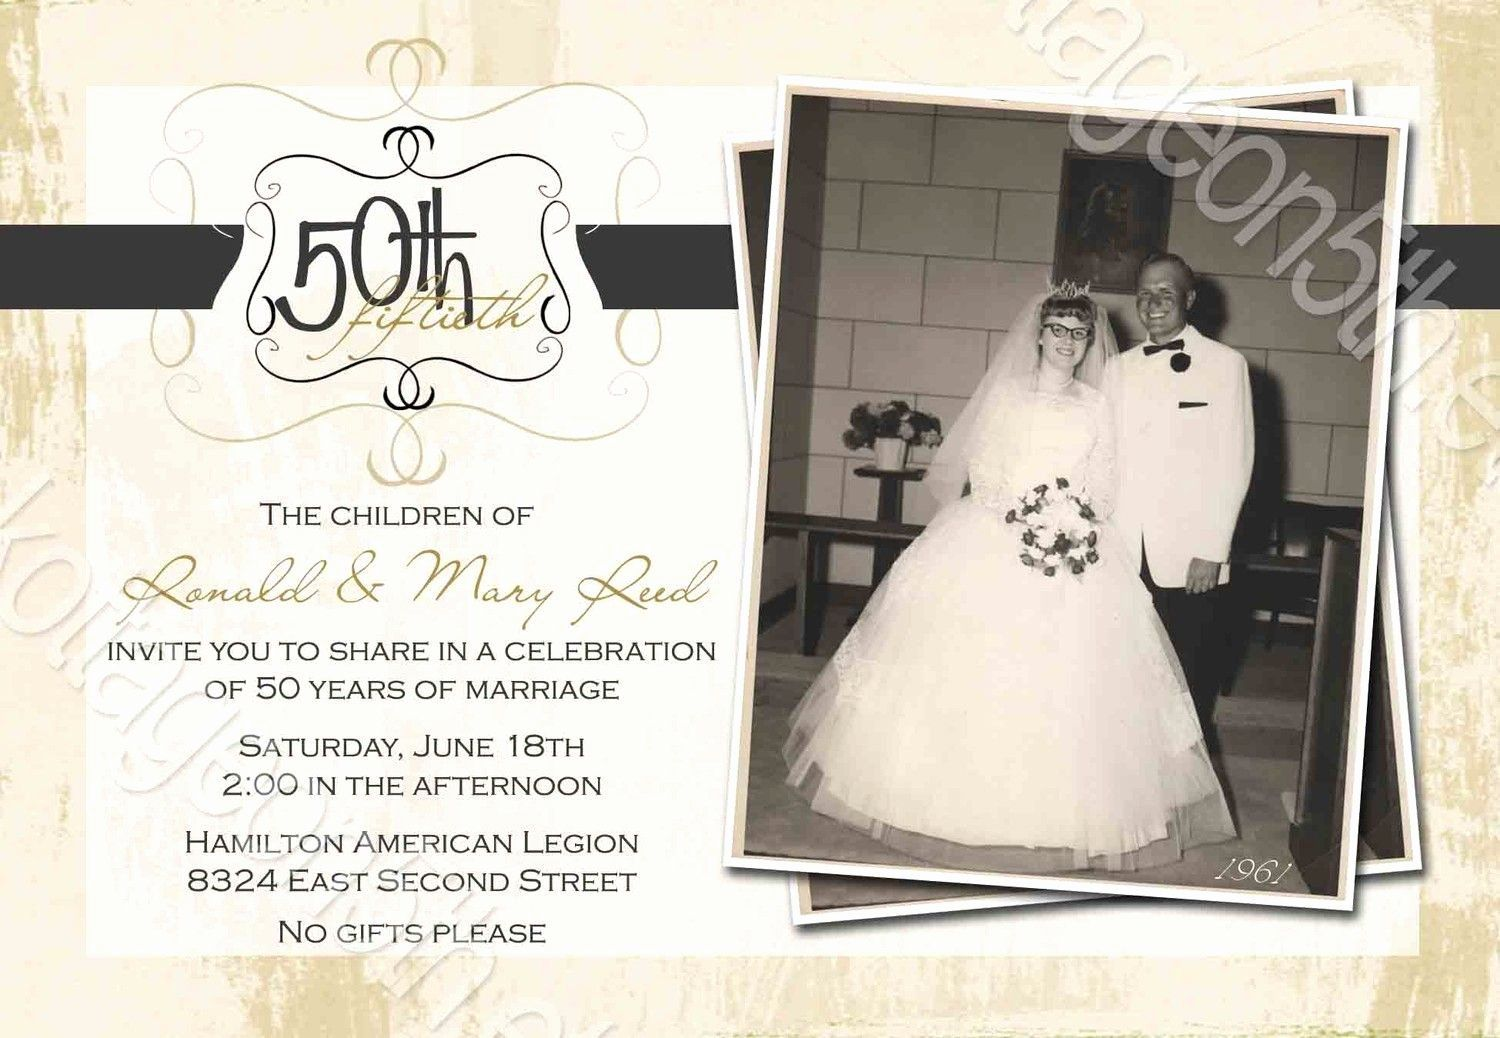 008 Archaicawful 50th Wedding Anniversary Invitation Template High Definition  Templates Golden Uk Free DownloadFull